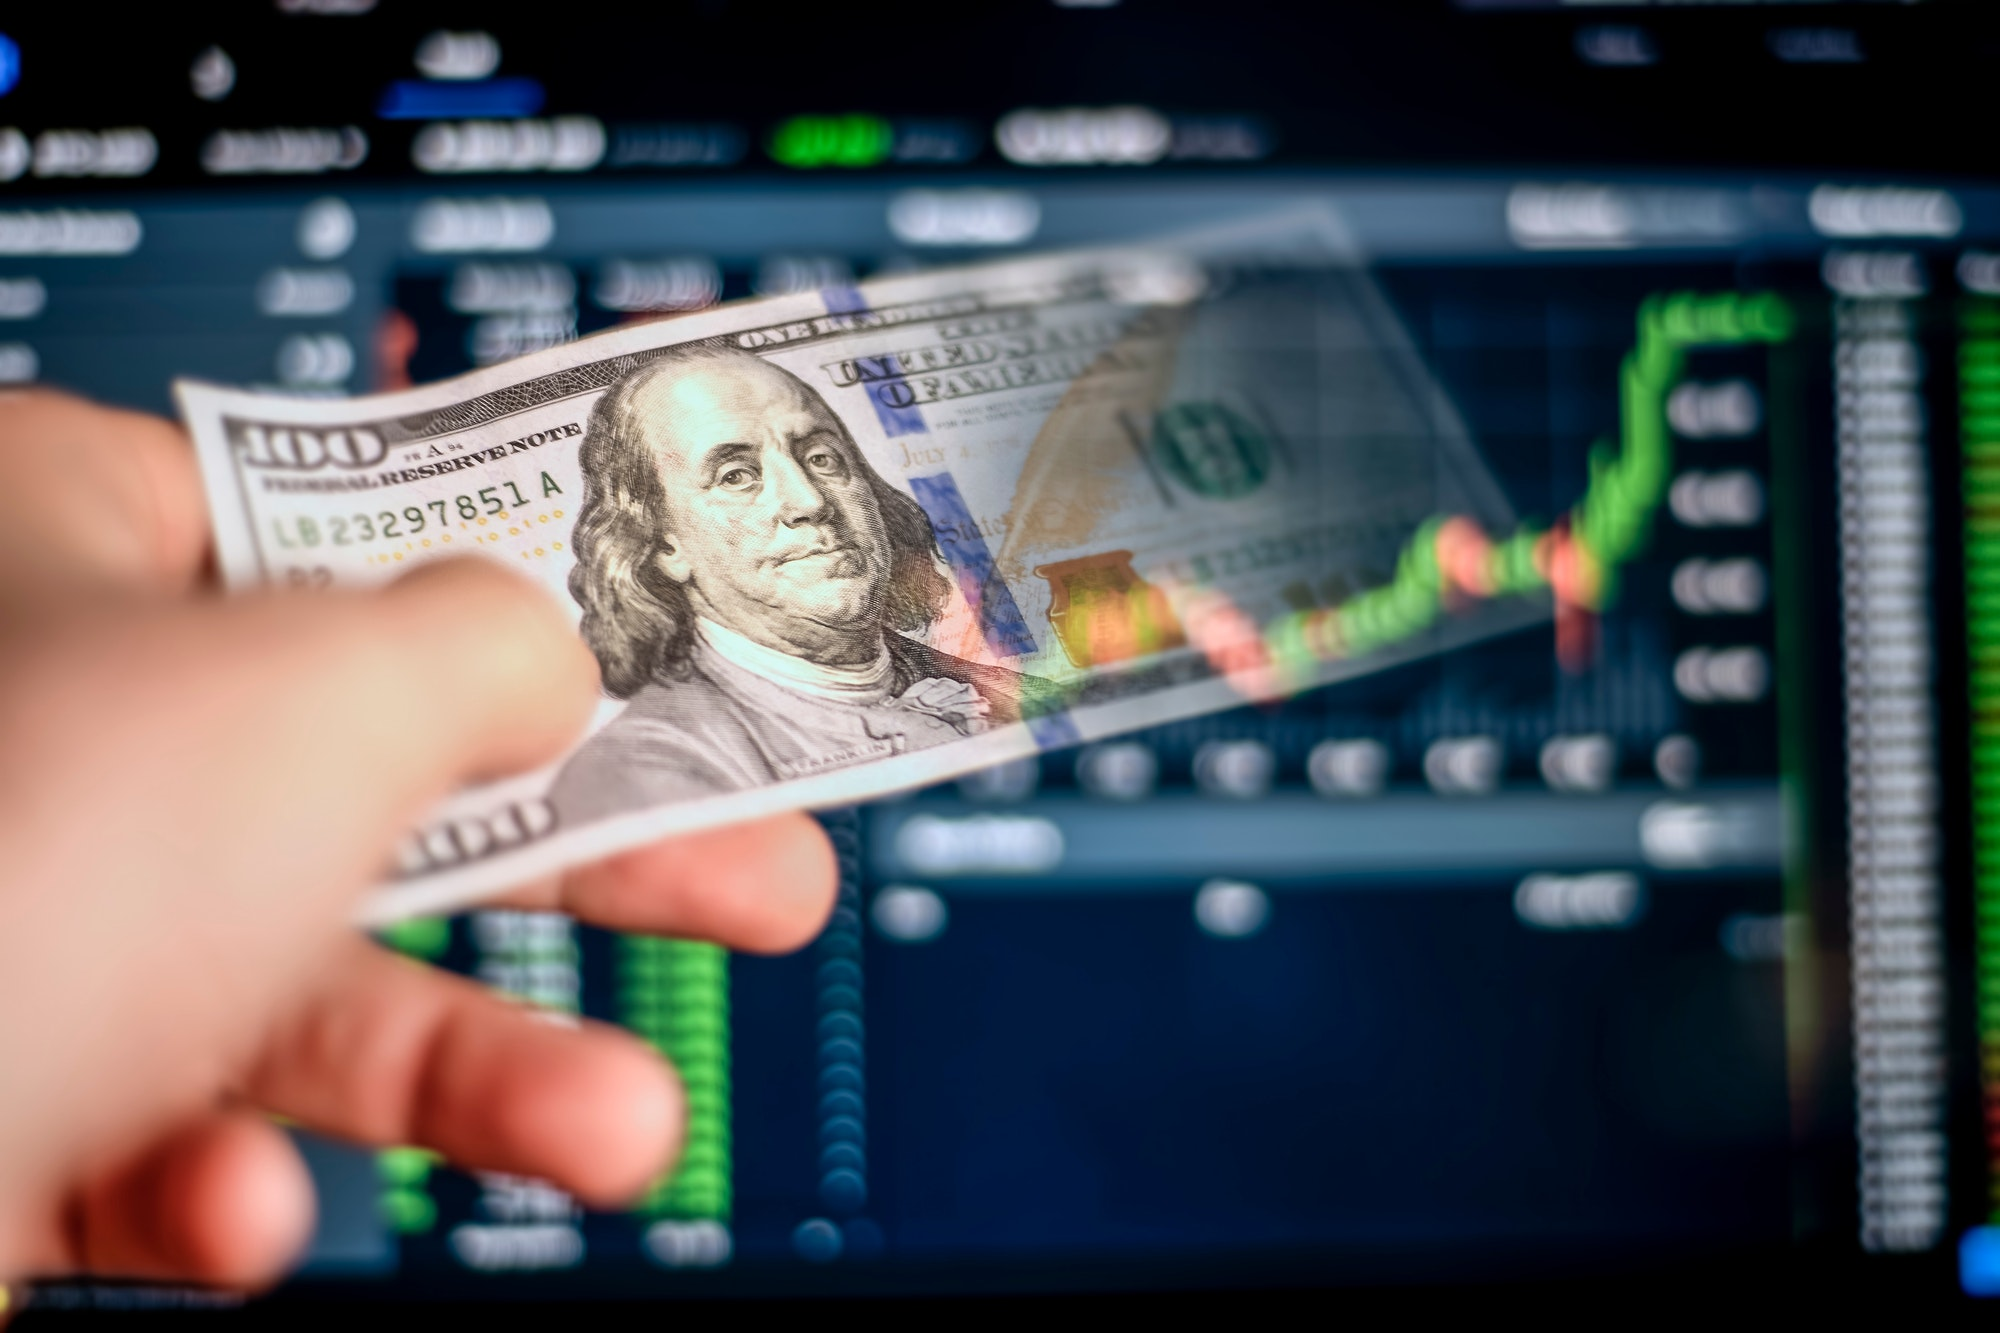 Taking profits from investing